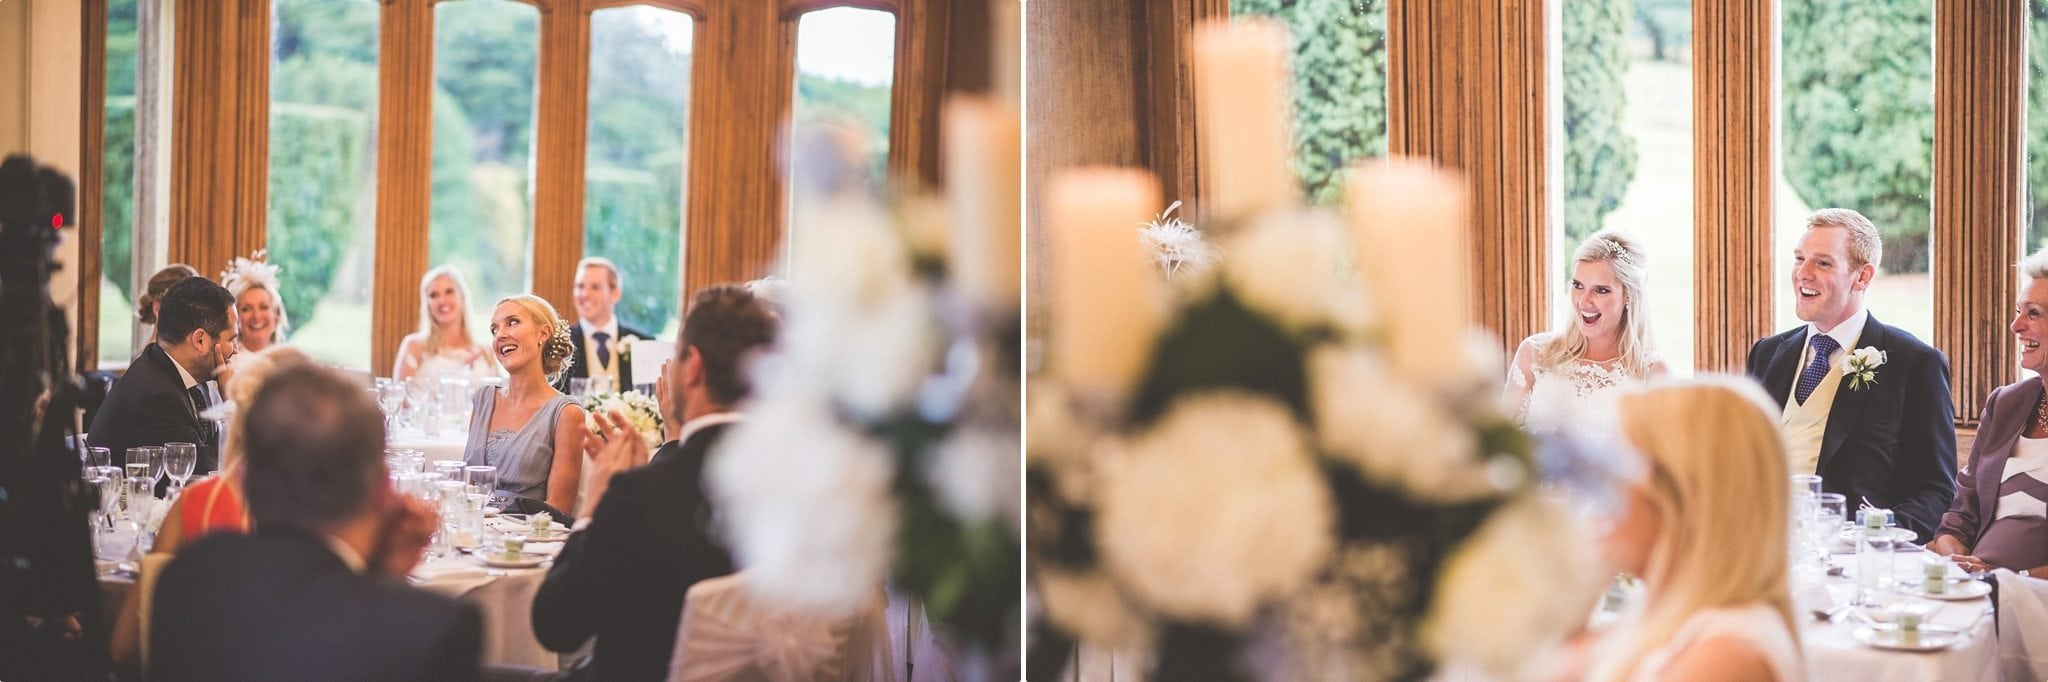 st-audries-park-wedding-maria-assia-photography-590